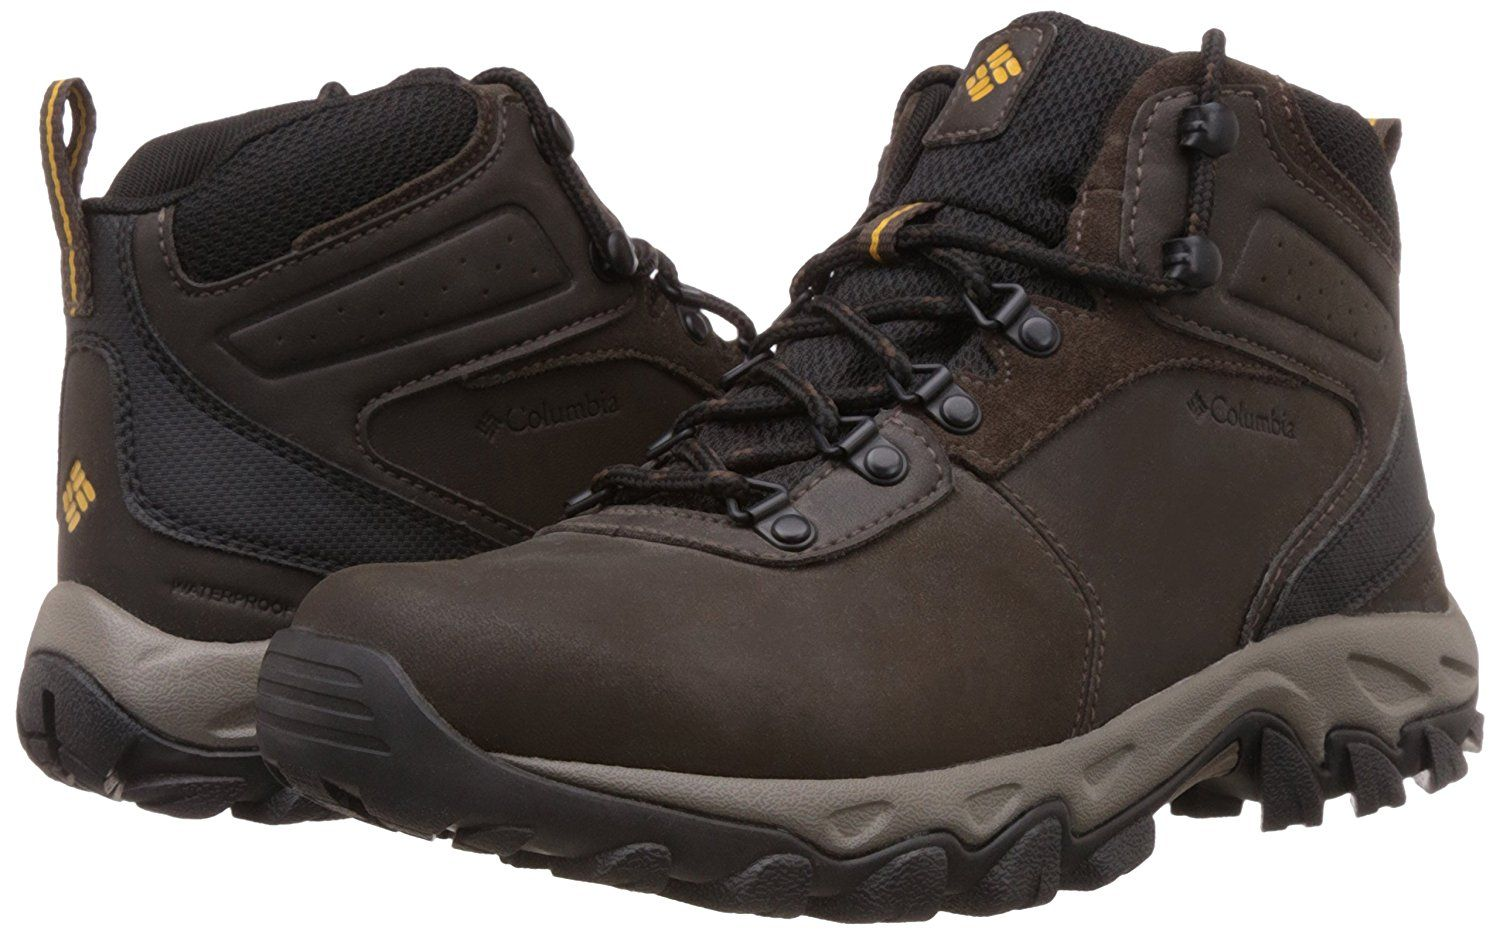 5th Best Hiking Boots for Men is Columbia Men s Newton Ridge Plus Ii  Waterproof Hiking Shoe  Columbia Newton Ridge Plus Ii is a best waterproof  hiking boot ... b49cc09e7c5